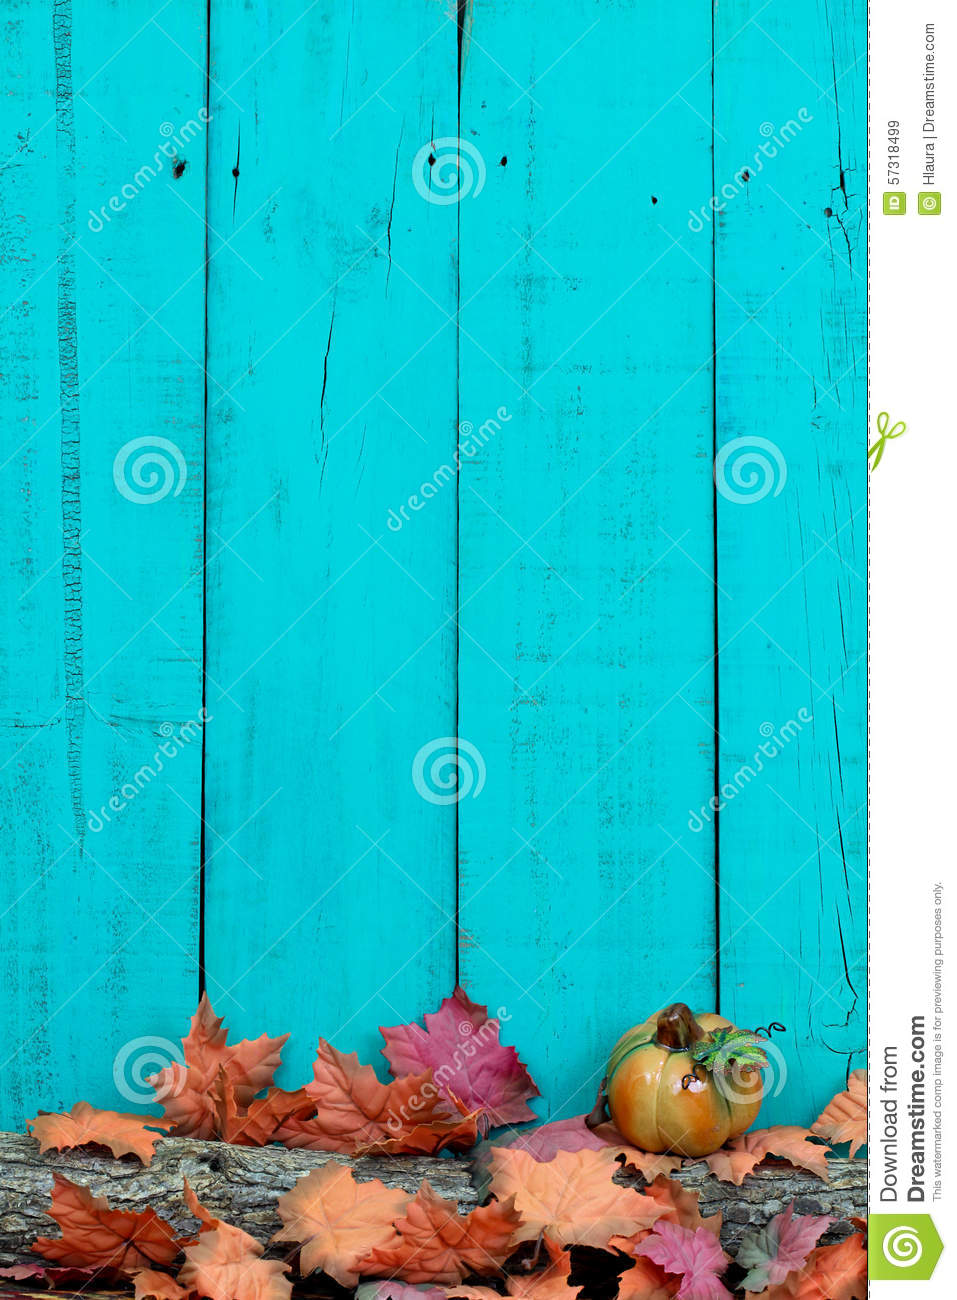 Rustic Wood Background With Autumn Leaves And Log Border